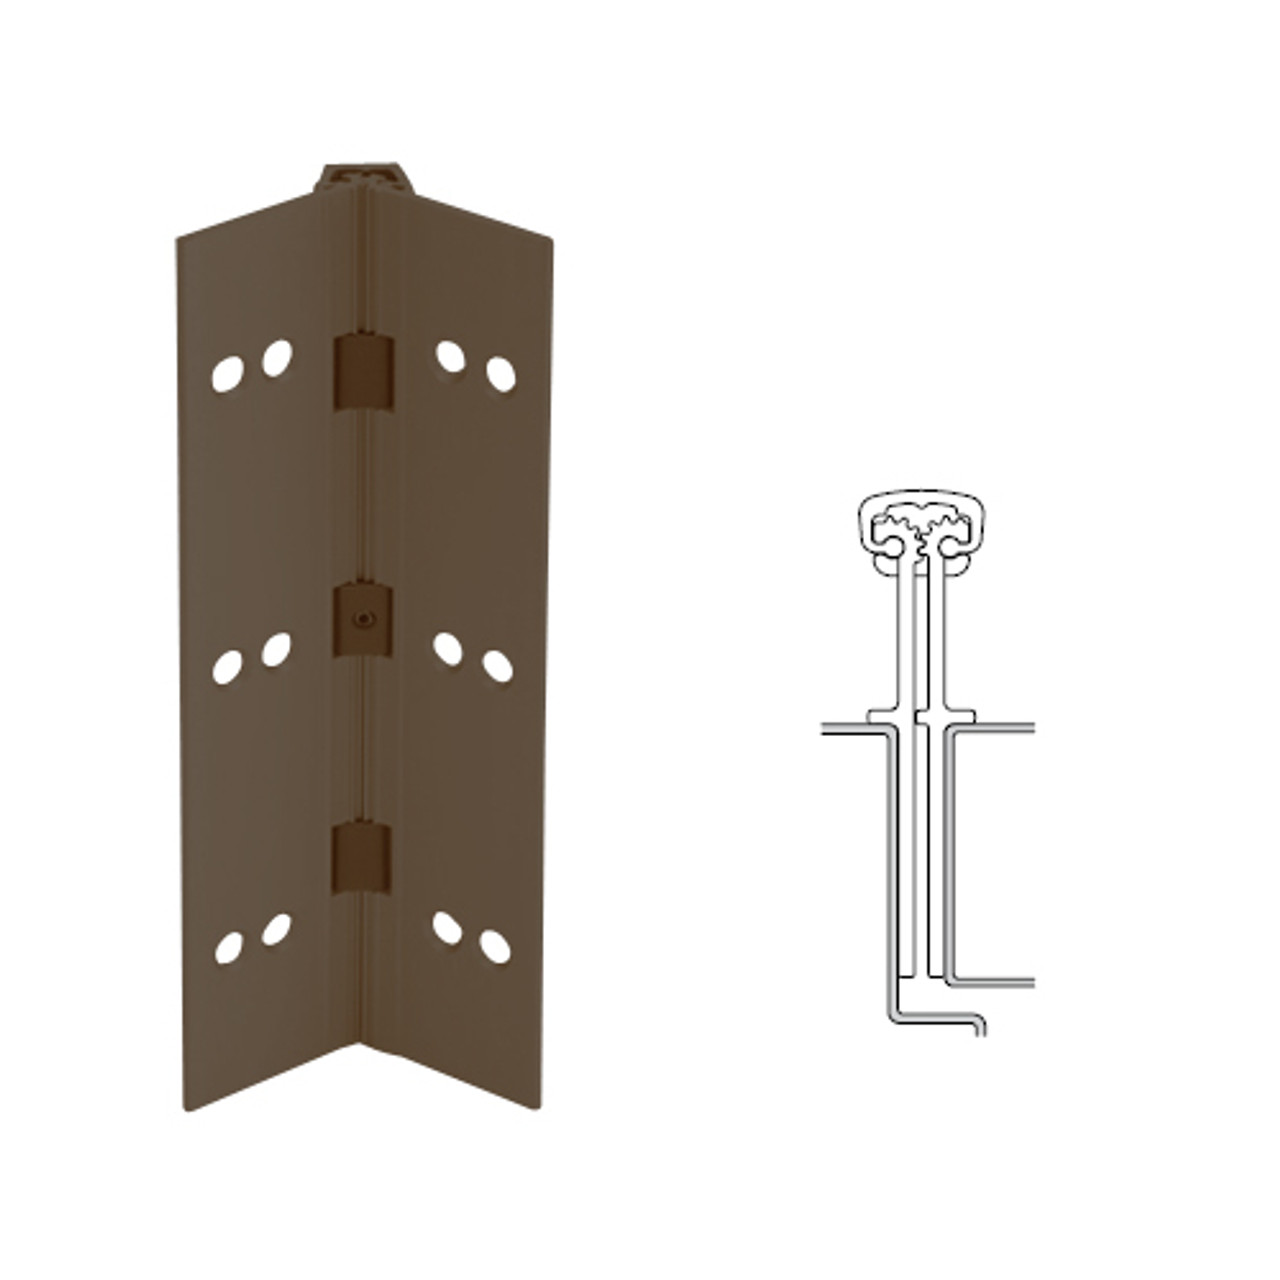 040XY-313AN-85-TF IVES Full Mortise Continuous Geared Hinges with Thread Forming Screws in Dark Bronze Anodized